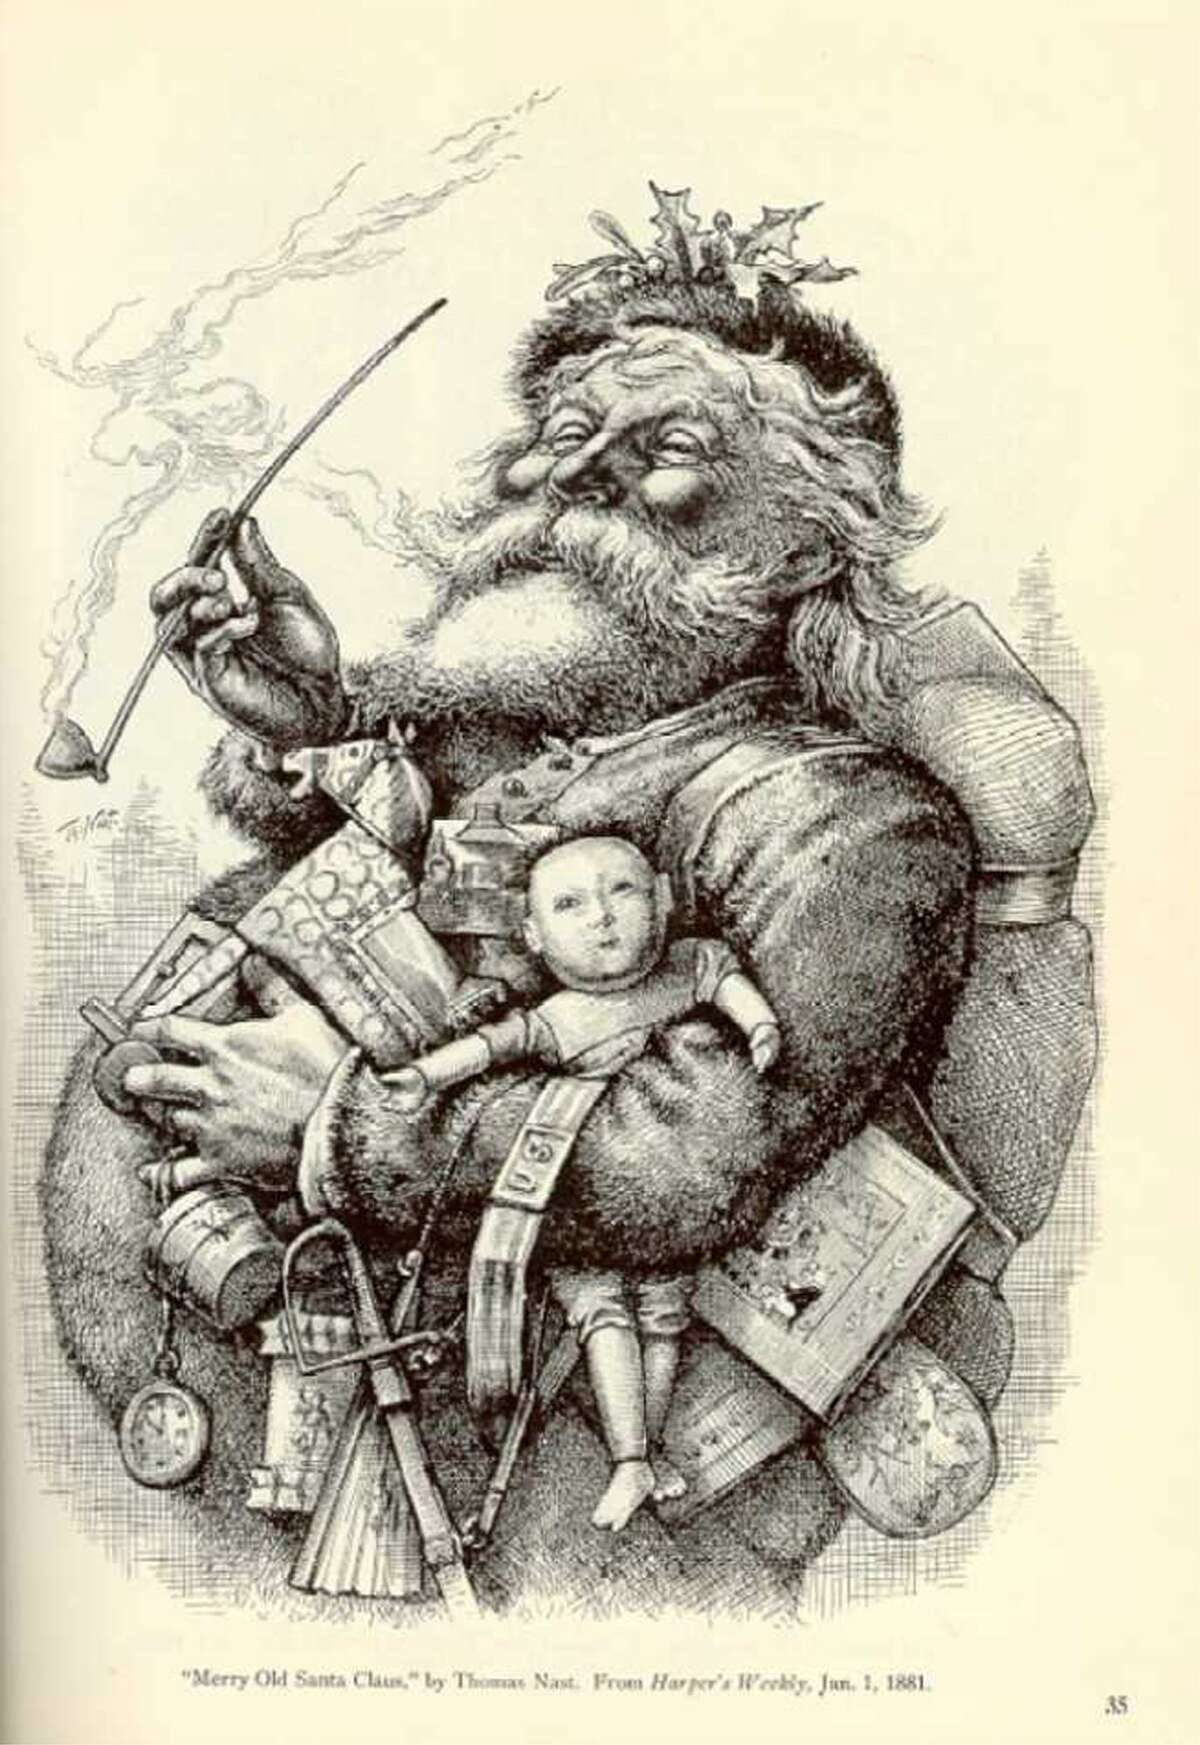 """The image of a fat generous Santa Claus comes from this Thomas Nast illustration titled """"Merry Old Santa Claus"""" from 1881."""